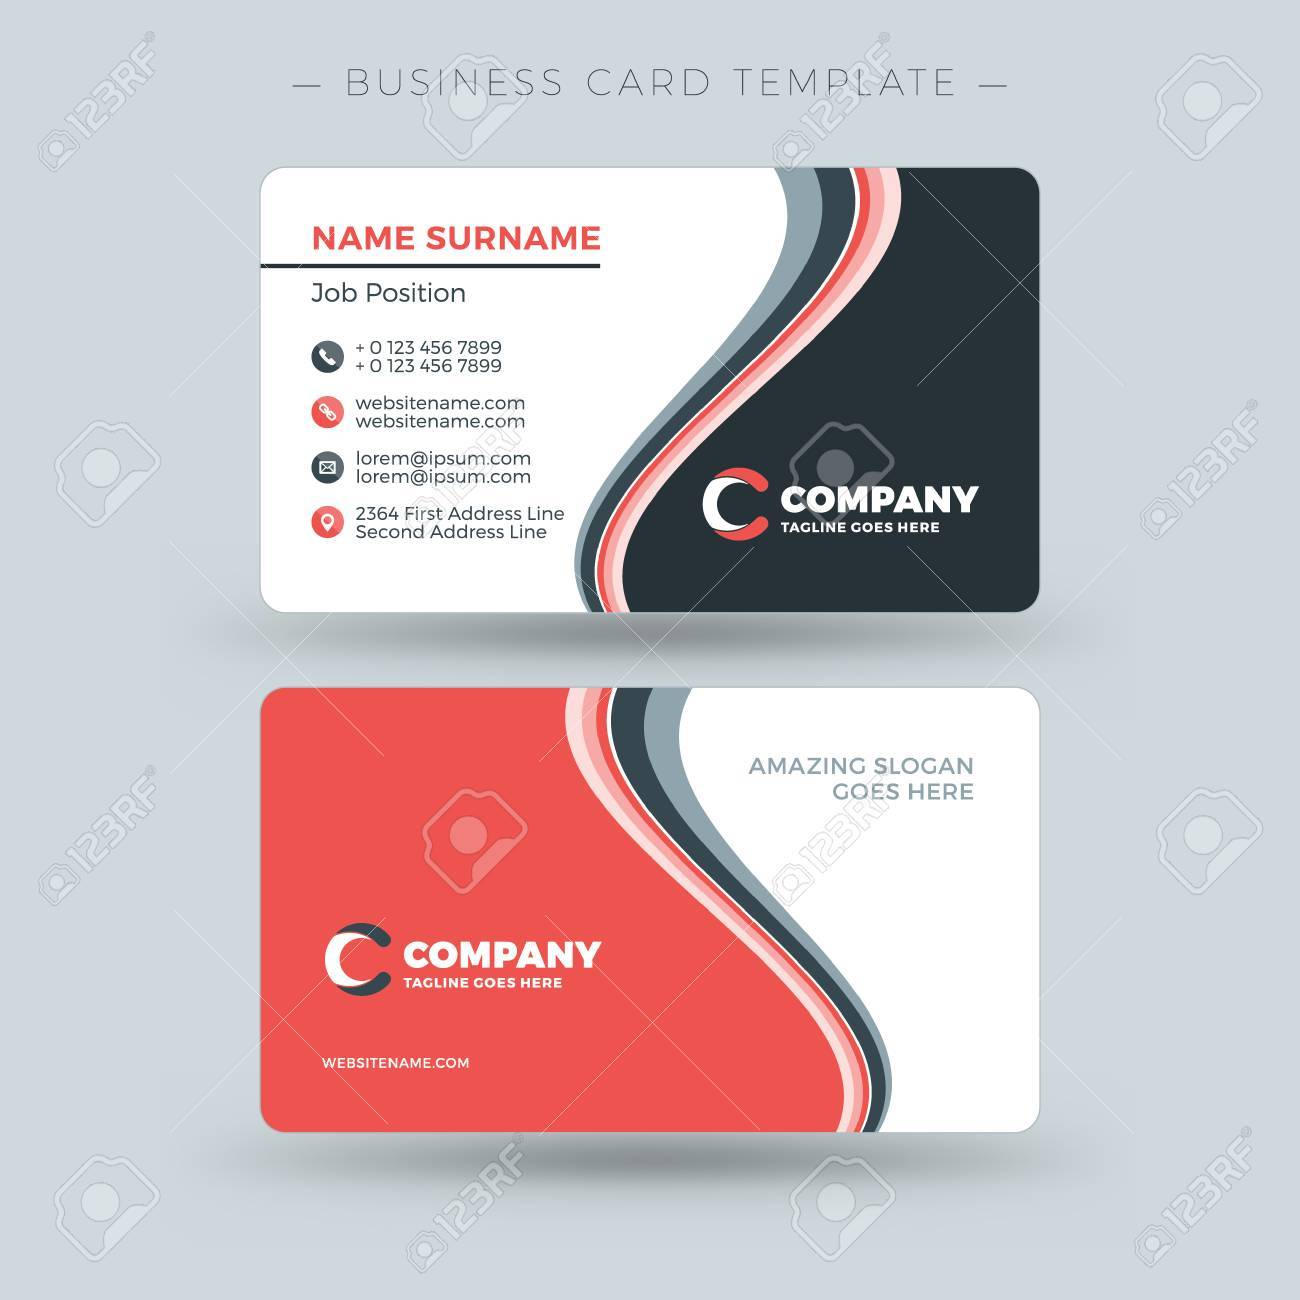 Doublesided Business Card Template With Abstract Red And Black - Two sided business card template